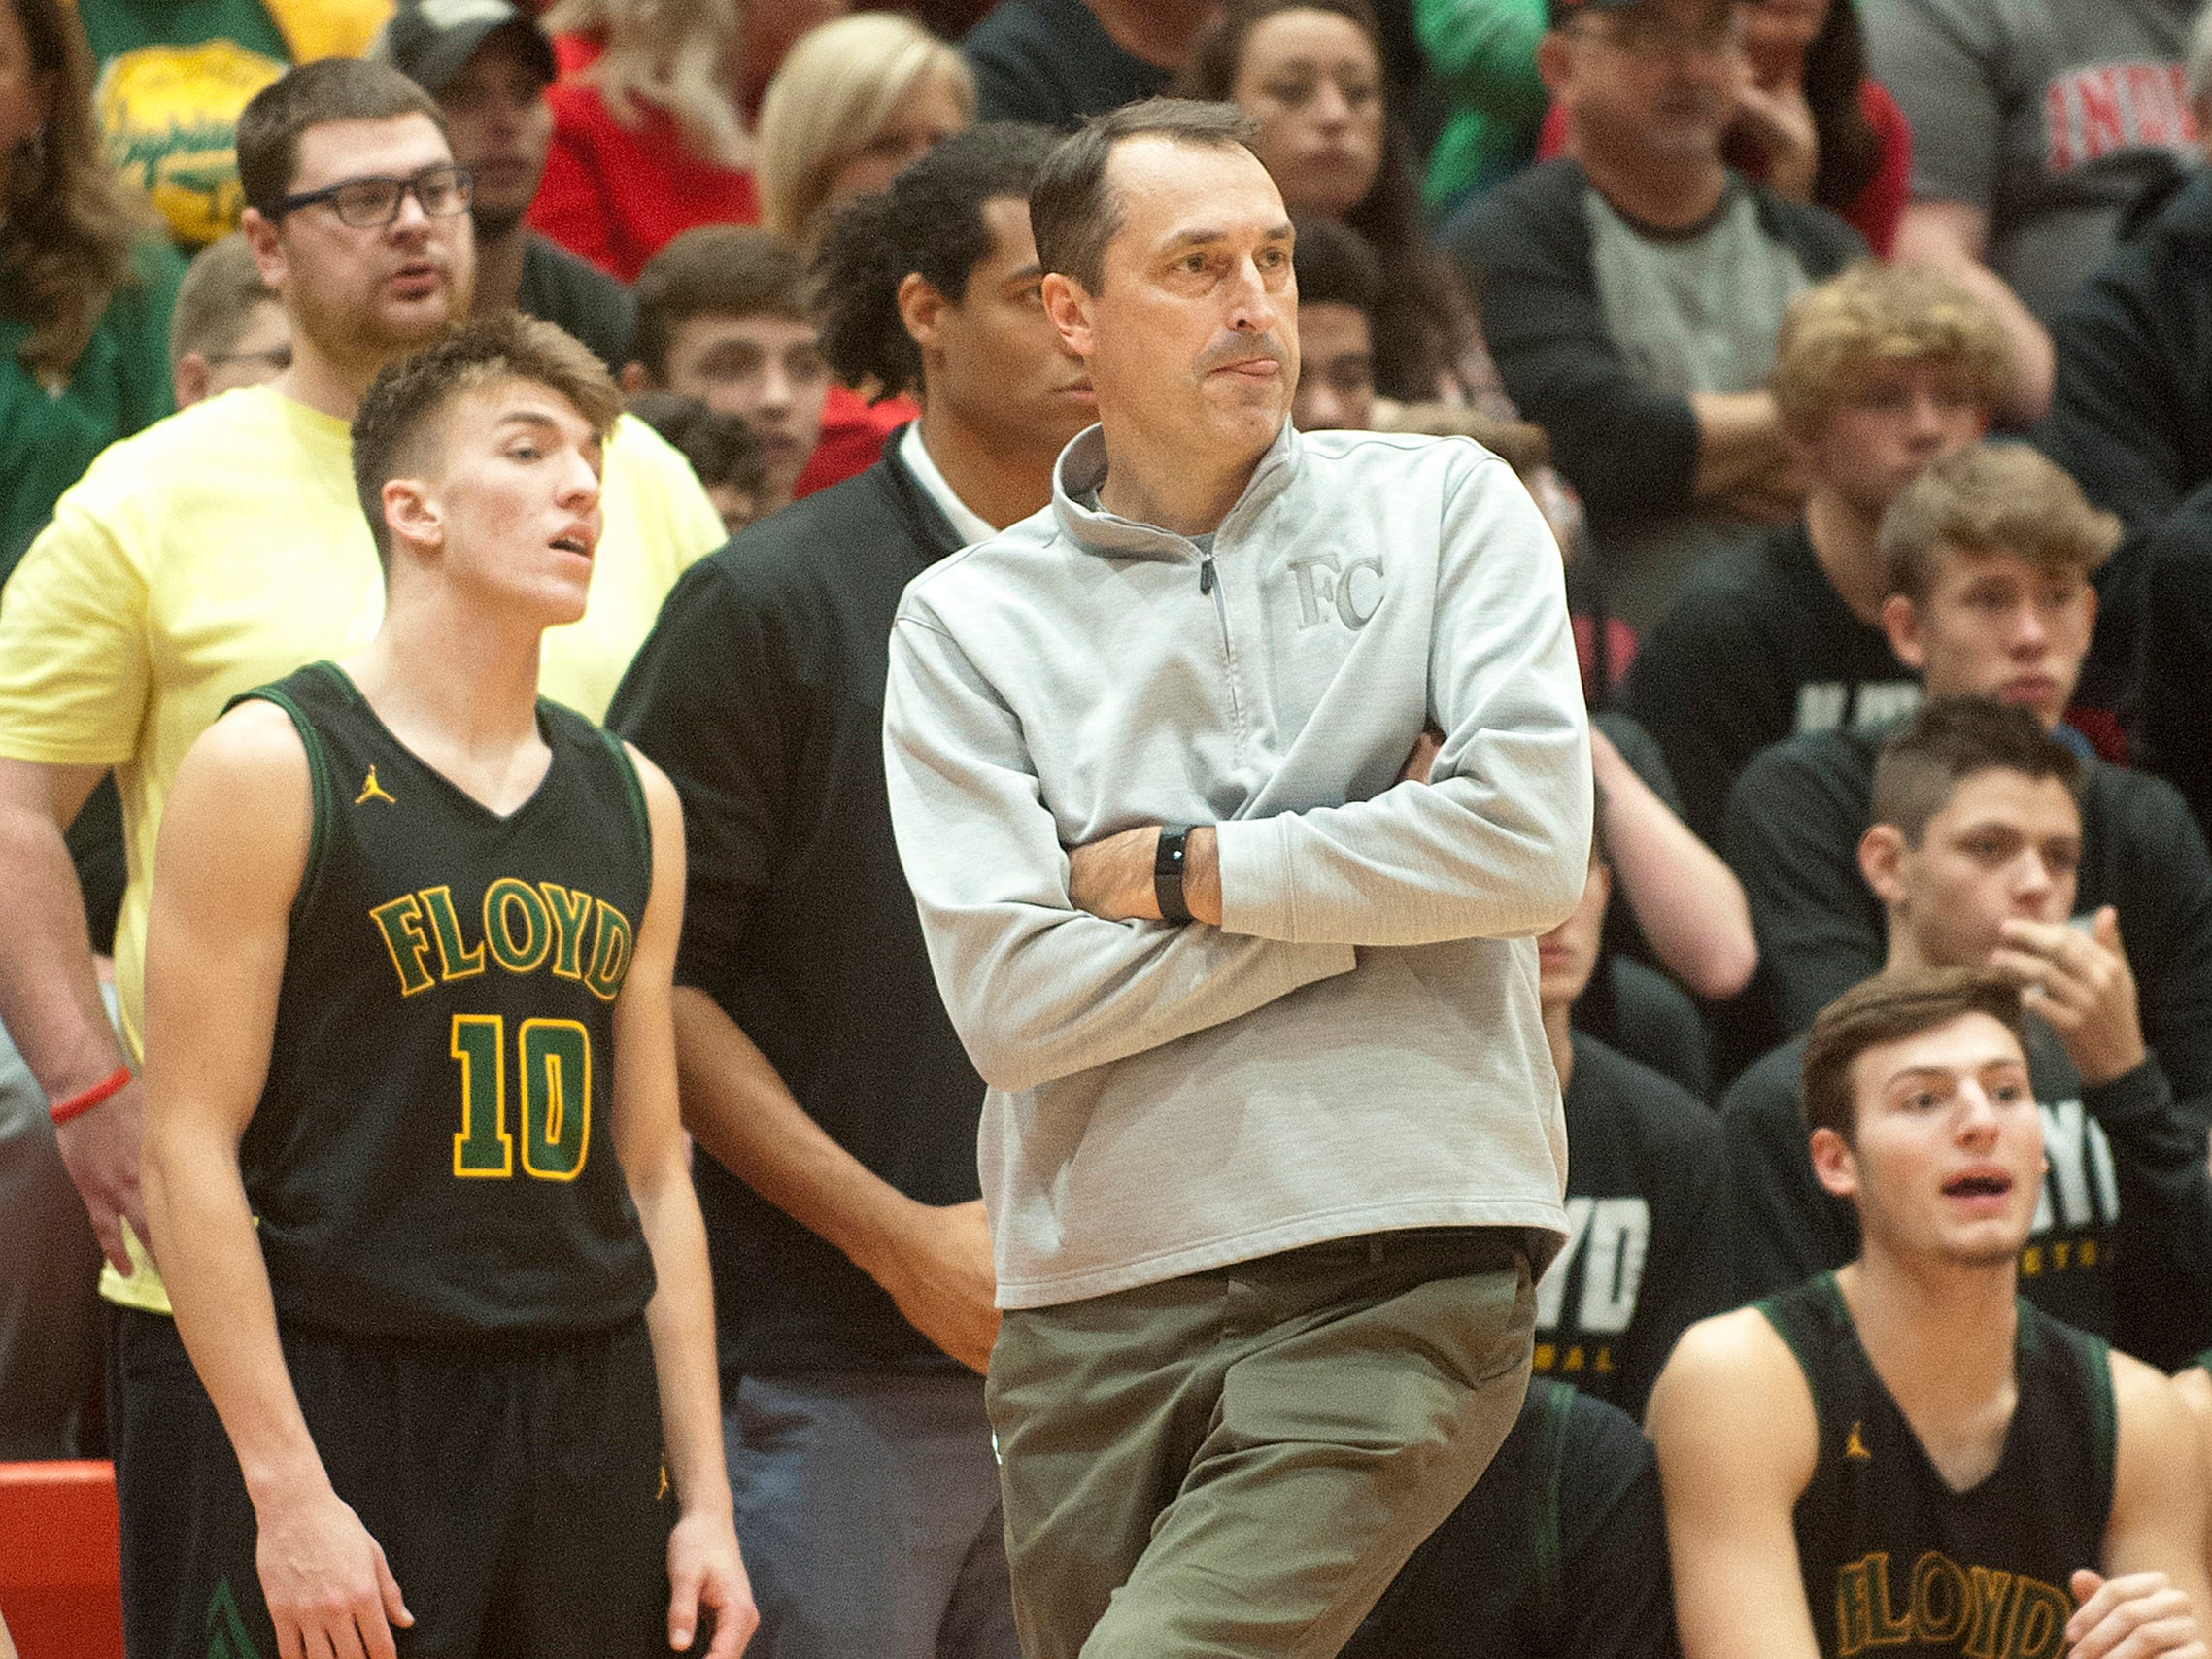 Floyd Central head basketball coach Todd Sturgeon gives a little body English as he hopes a foul call will go his way during the game.07 December 2018